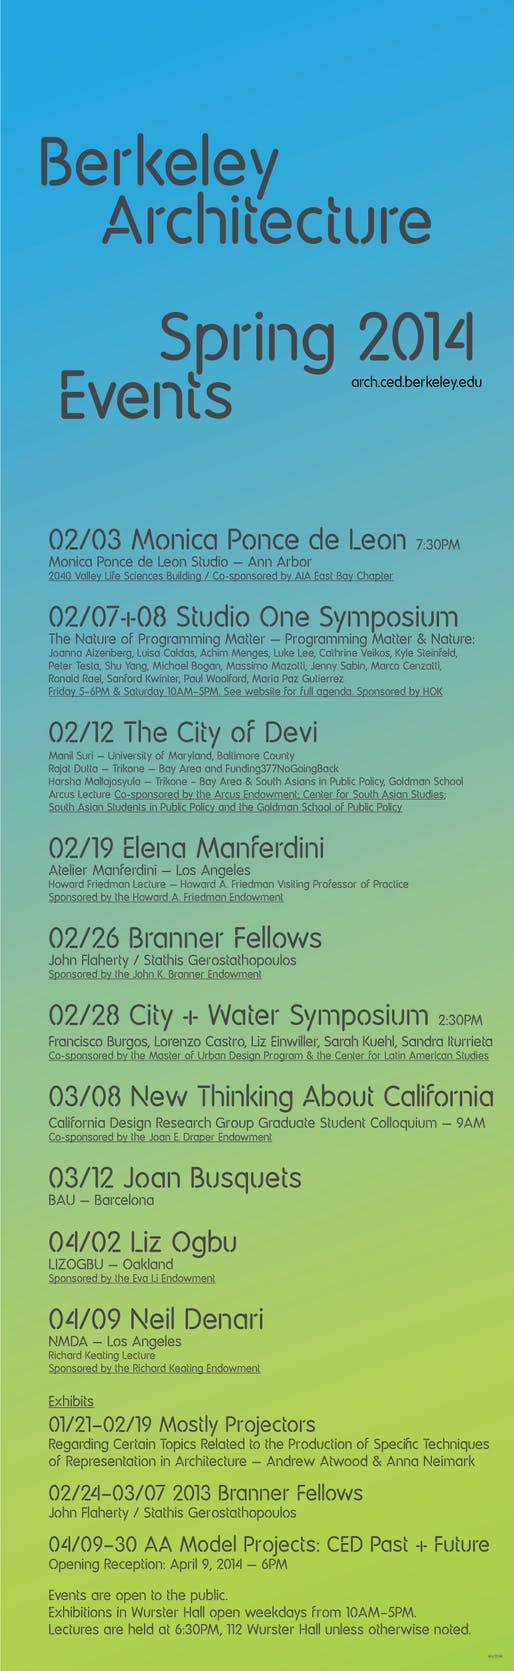 UC Berkeley College of Environmental Design, Spring '14 Lecture Events. Image courtesy of UC Berkeley CED.